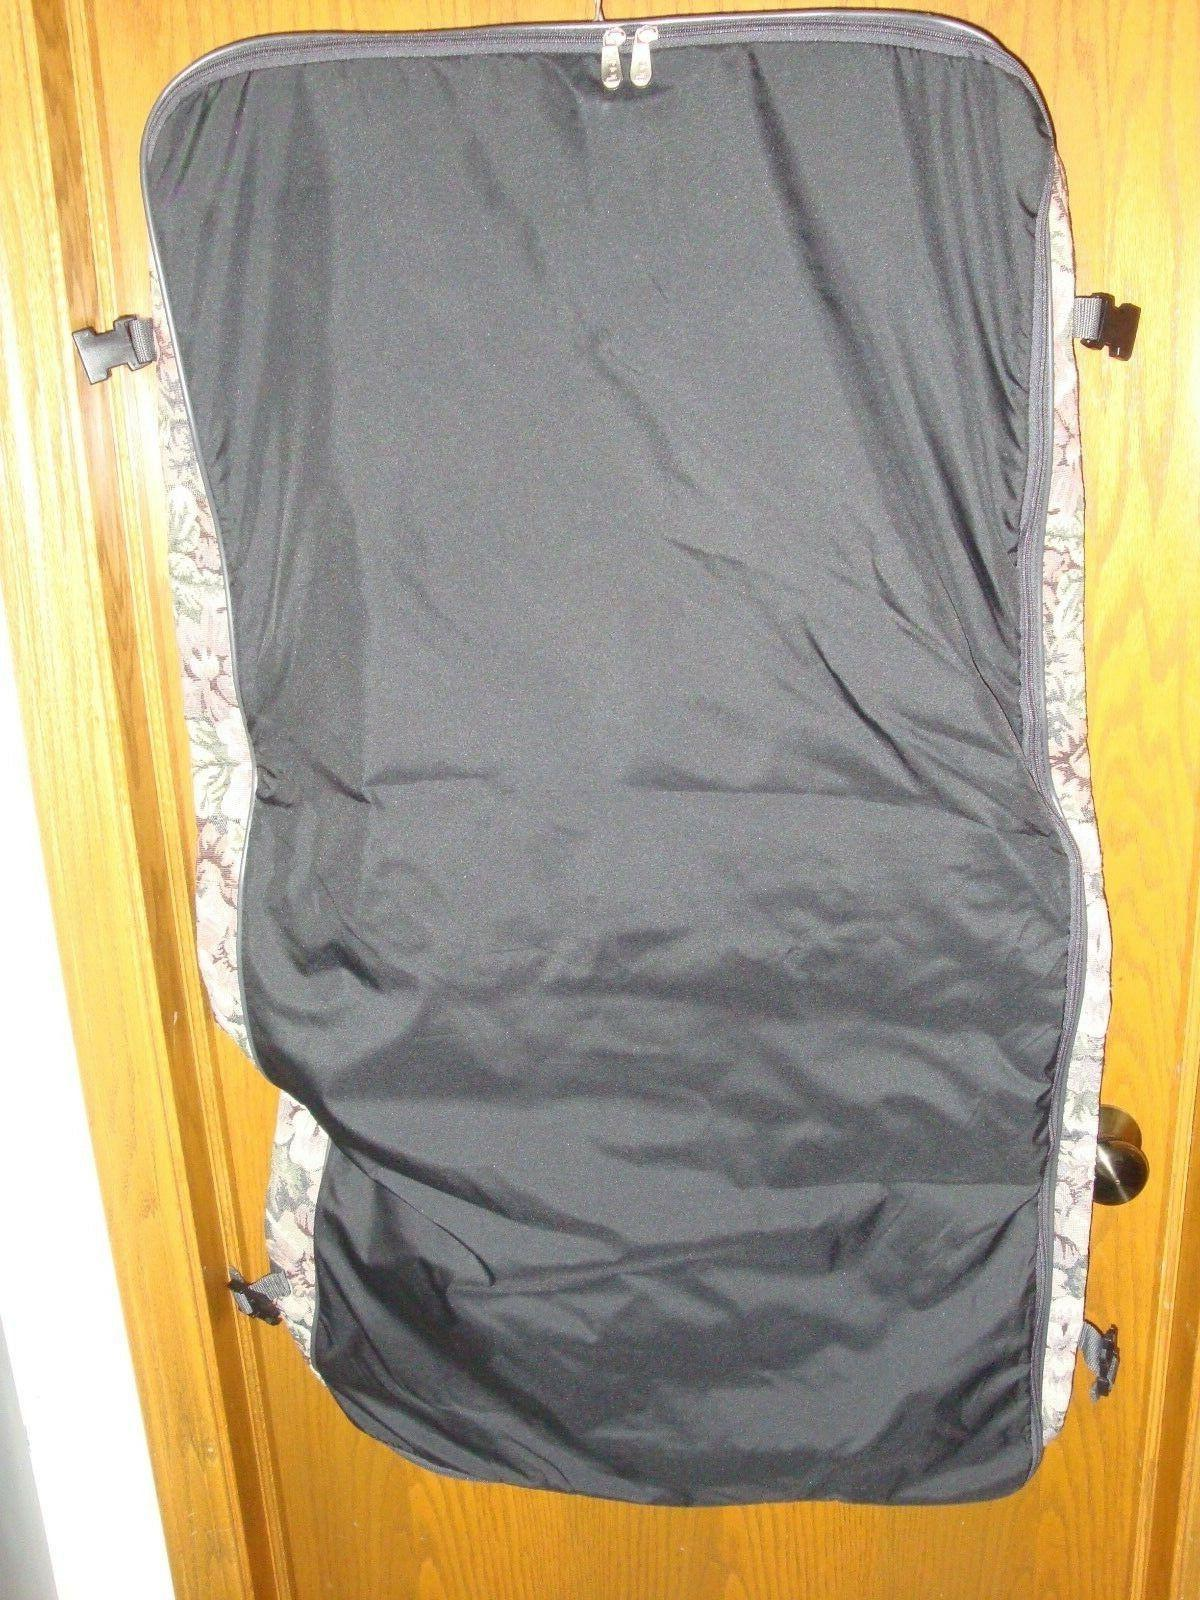 Ciao! Serenade Collection Style Garment NWT